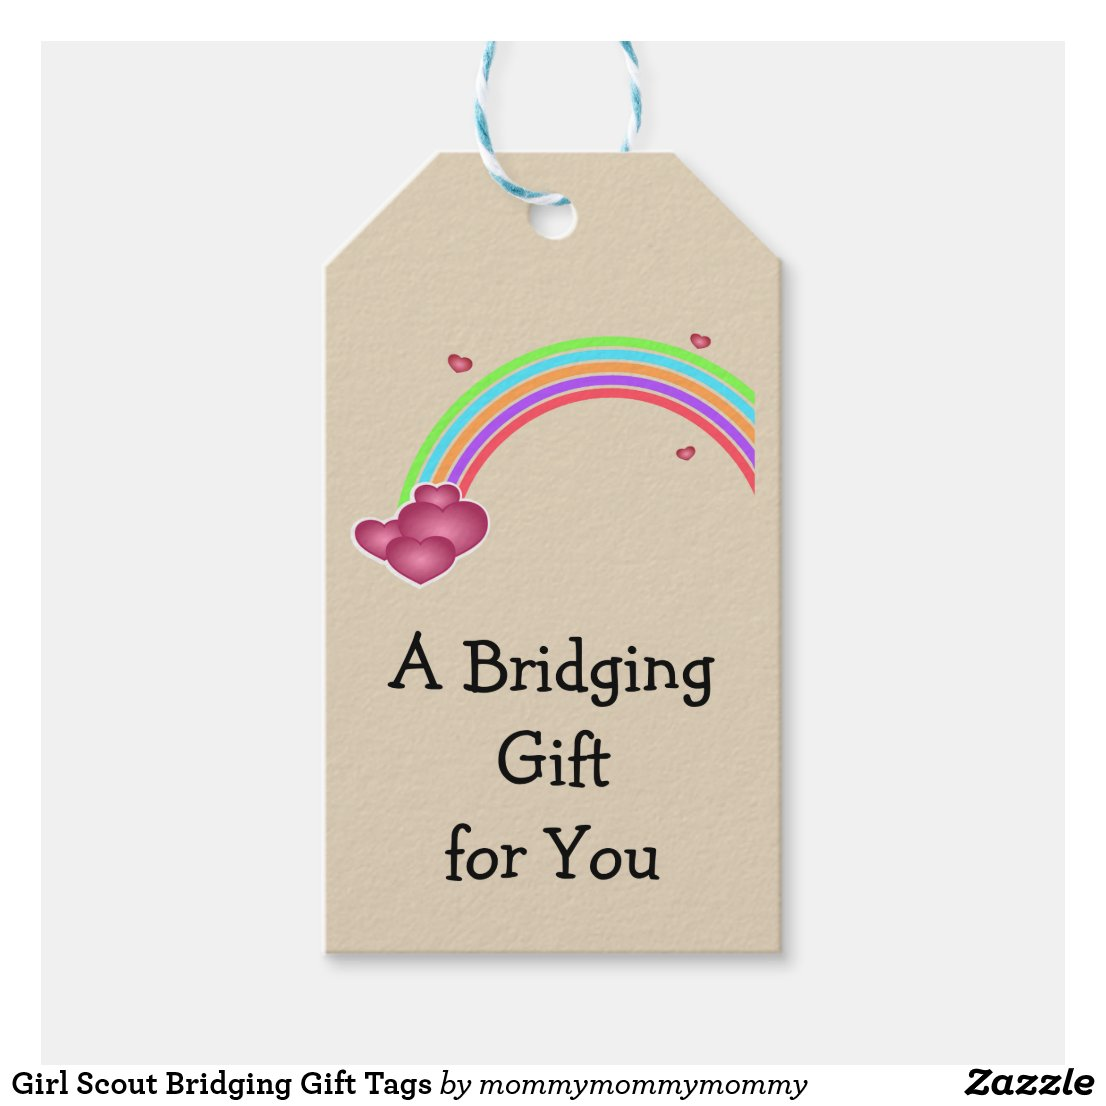 Girl Scout Bridging Gift Tags